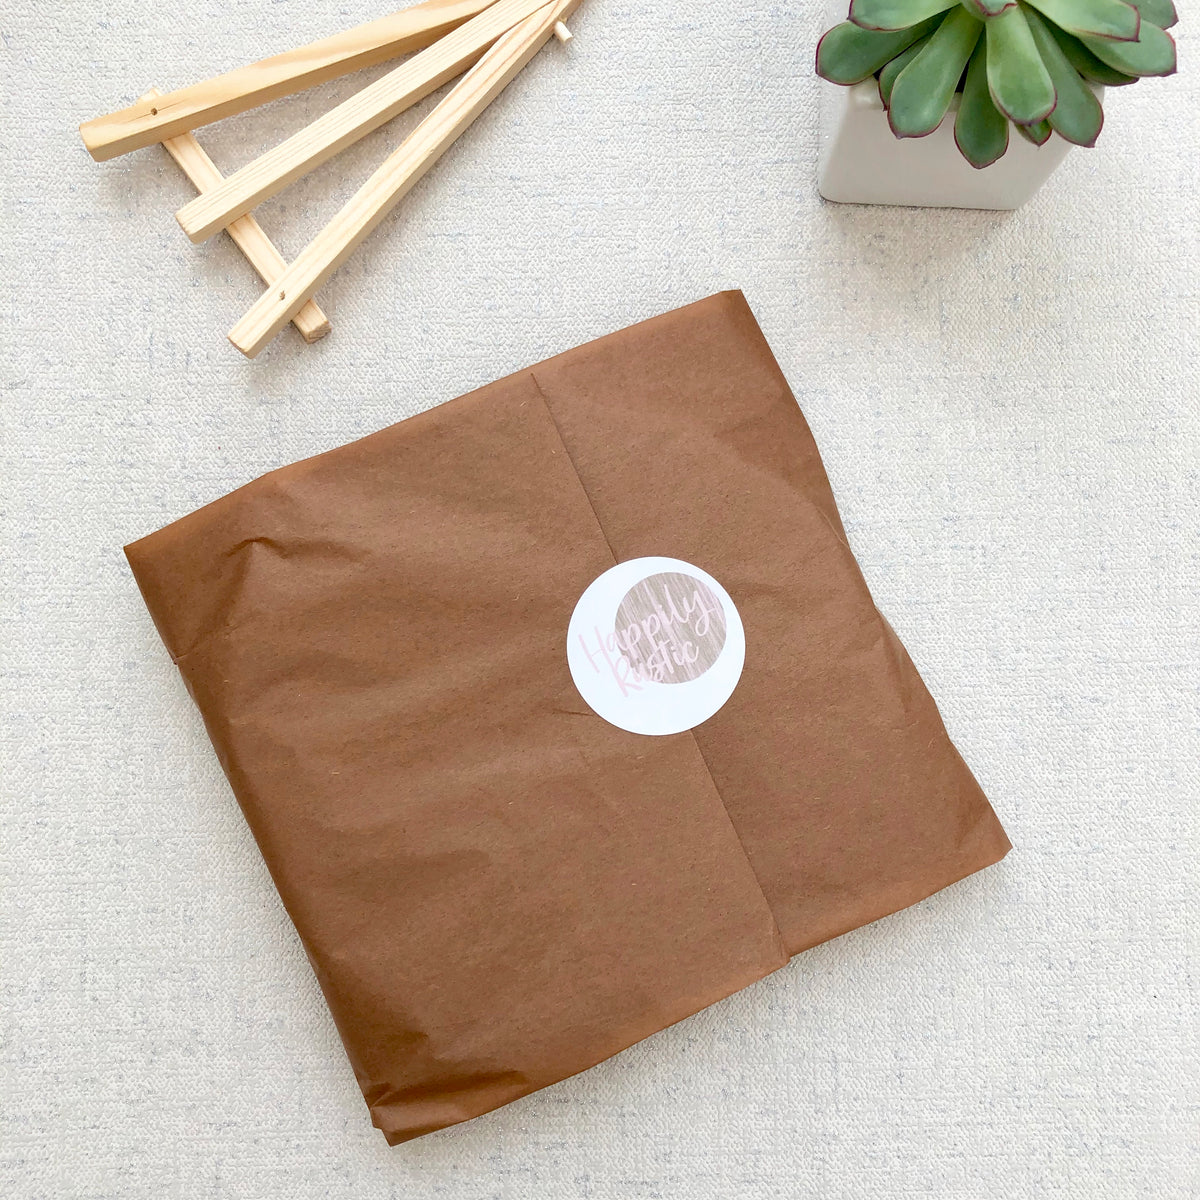 A wood slice photo gift wrapped in brown tissue paper with a Happily Rustic sticker. A wooden stand and small plant are also shown.